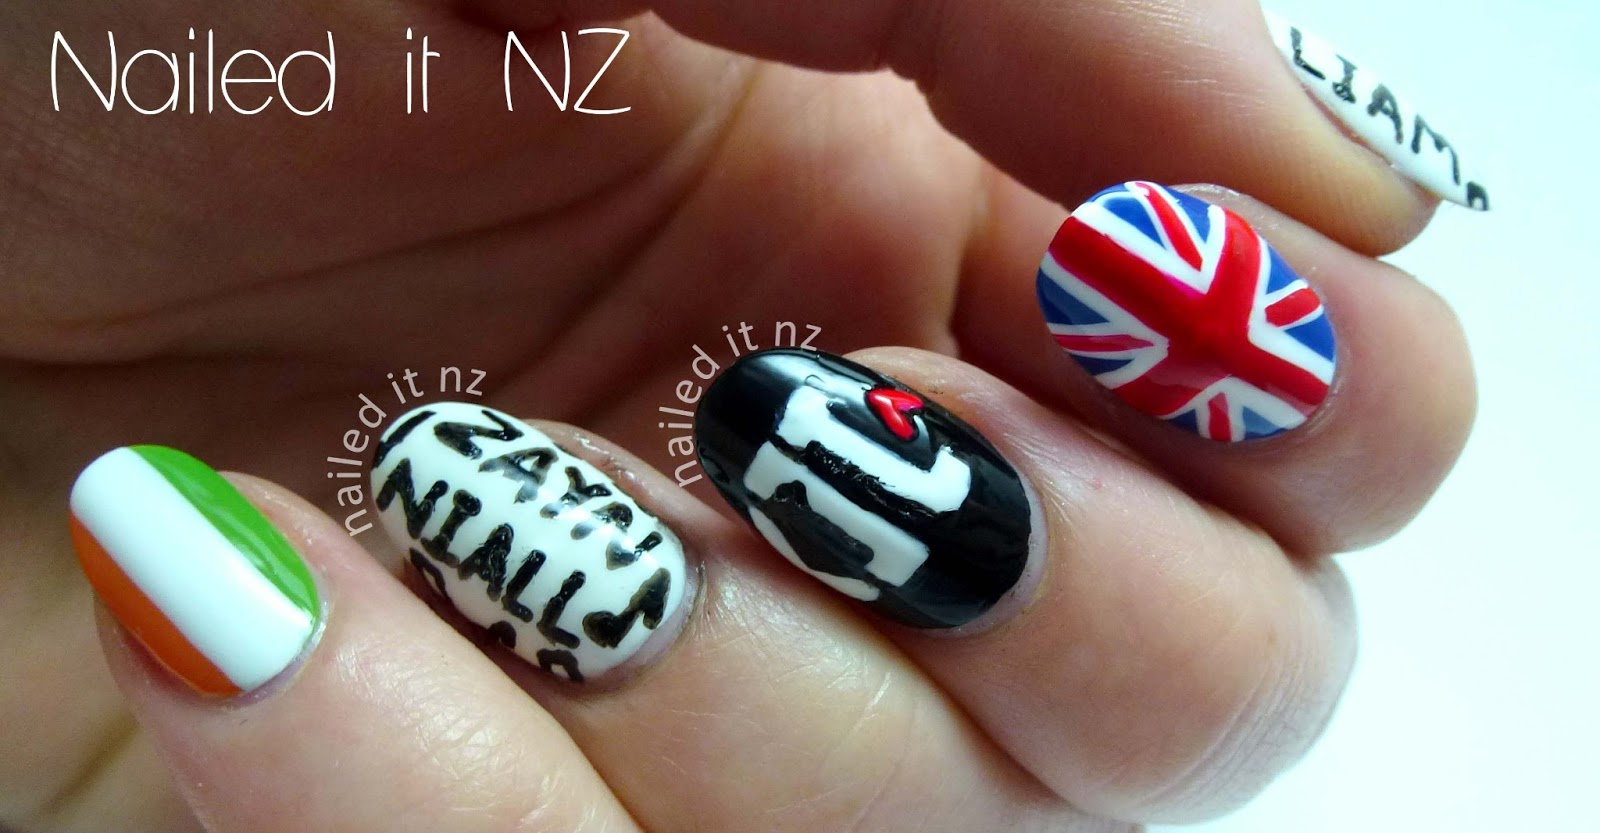 Nailed It NZ: One Direction nail art (finally!)